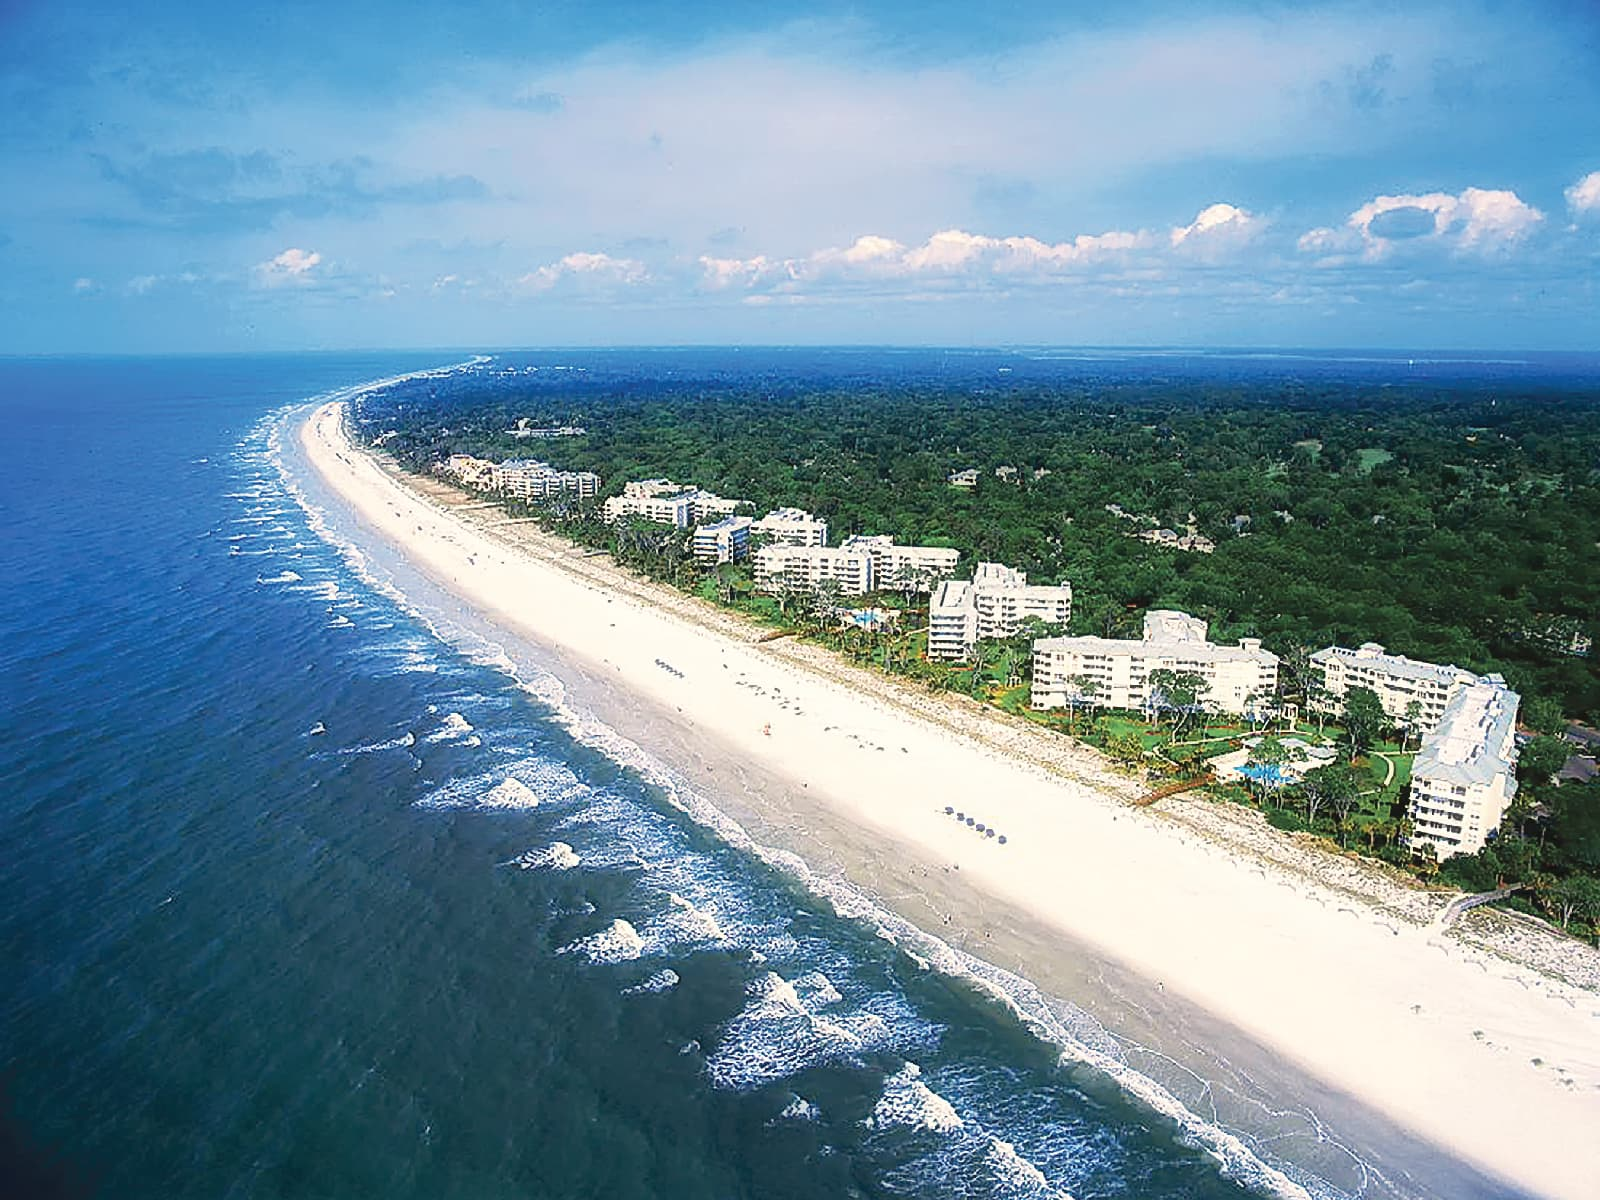 Palmetto Dunes Oceanfront Resort - one of the best tennis resorts for your tennis holidays in South Carolina